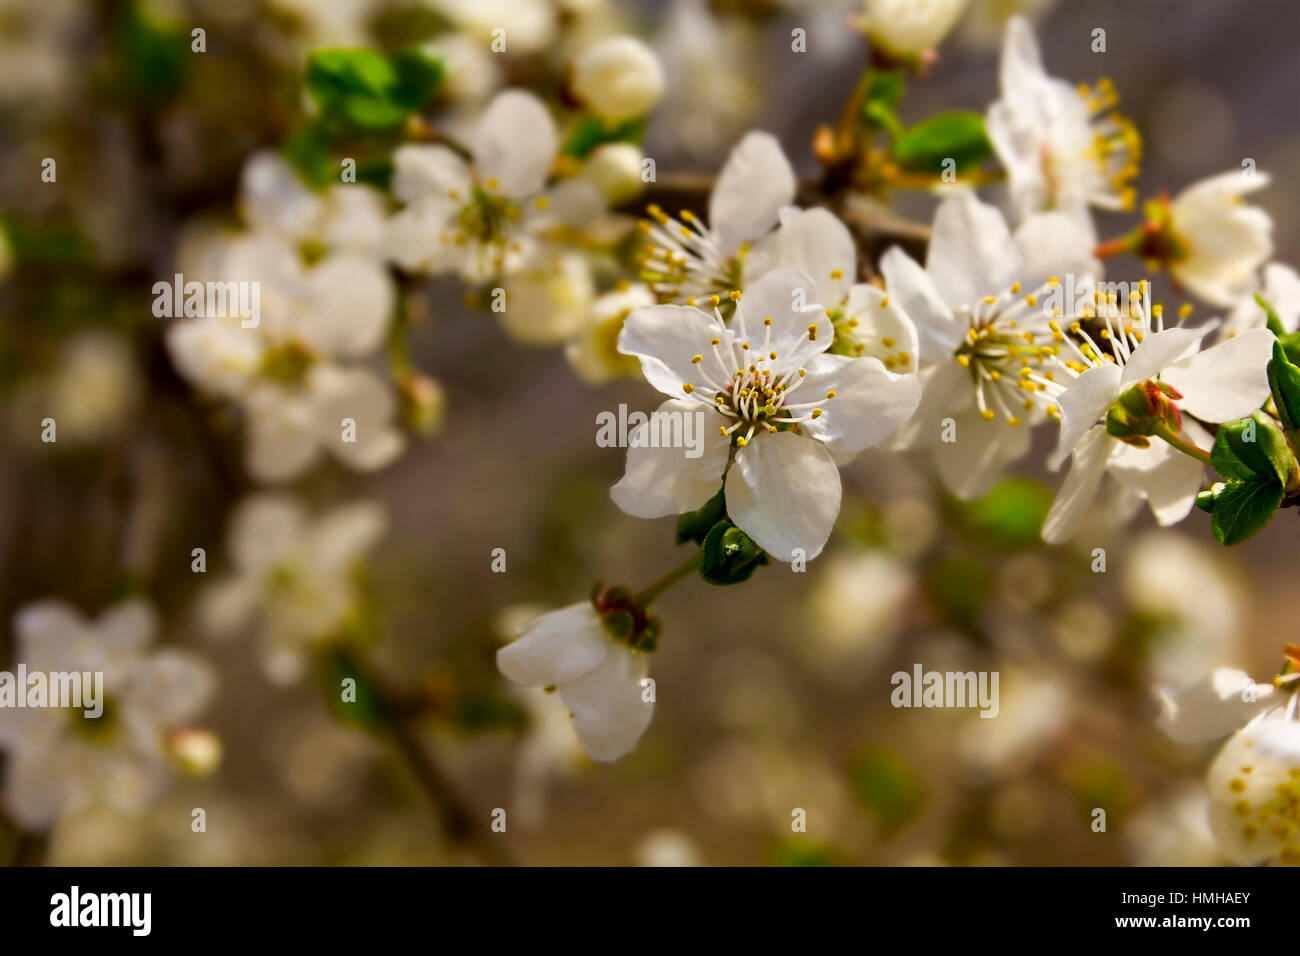 Beautiful Flowering Apple Trees Background With Blooming Flowers In